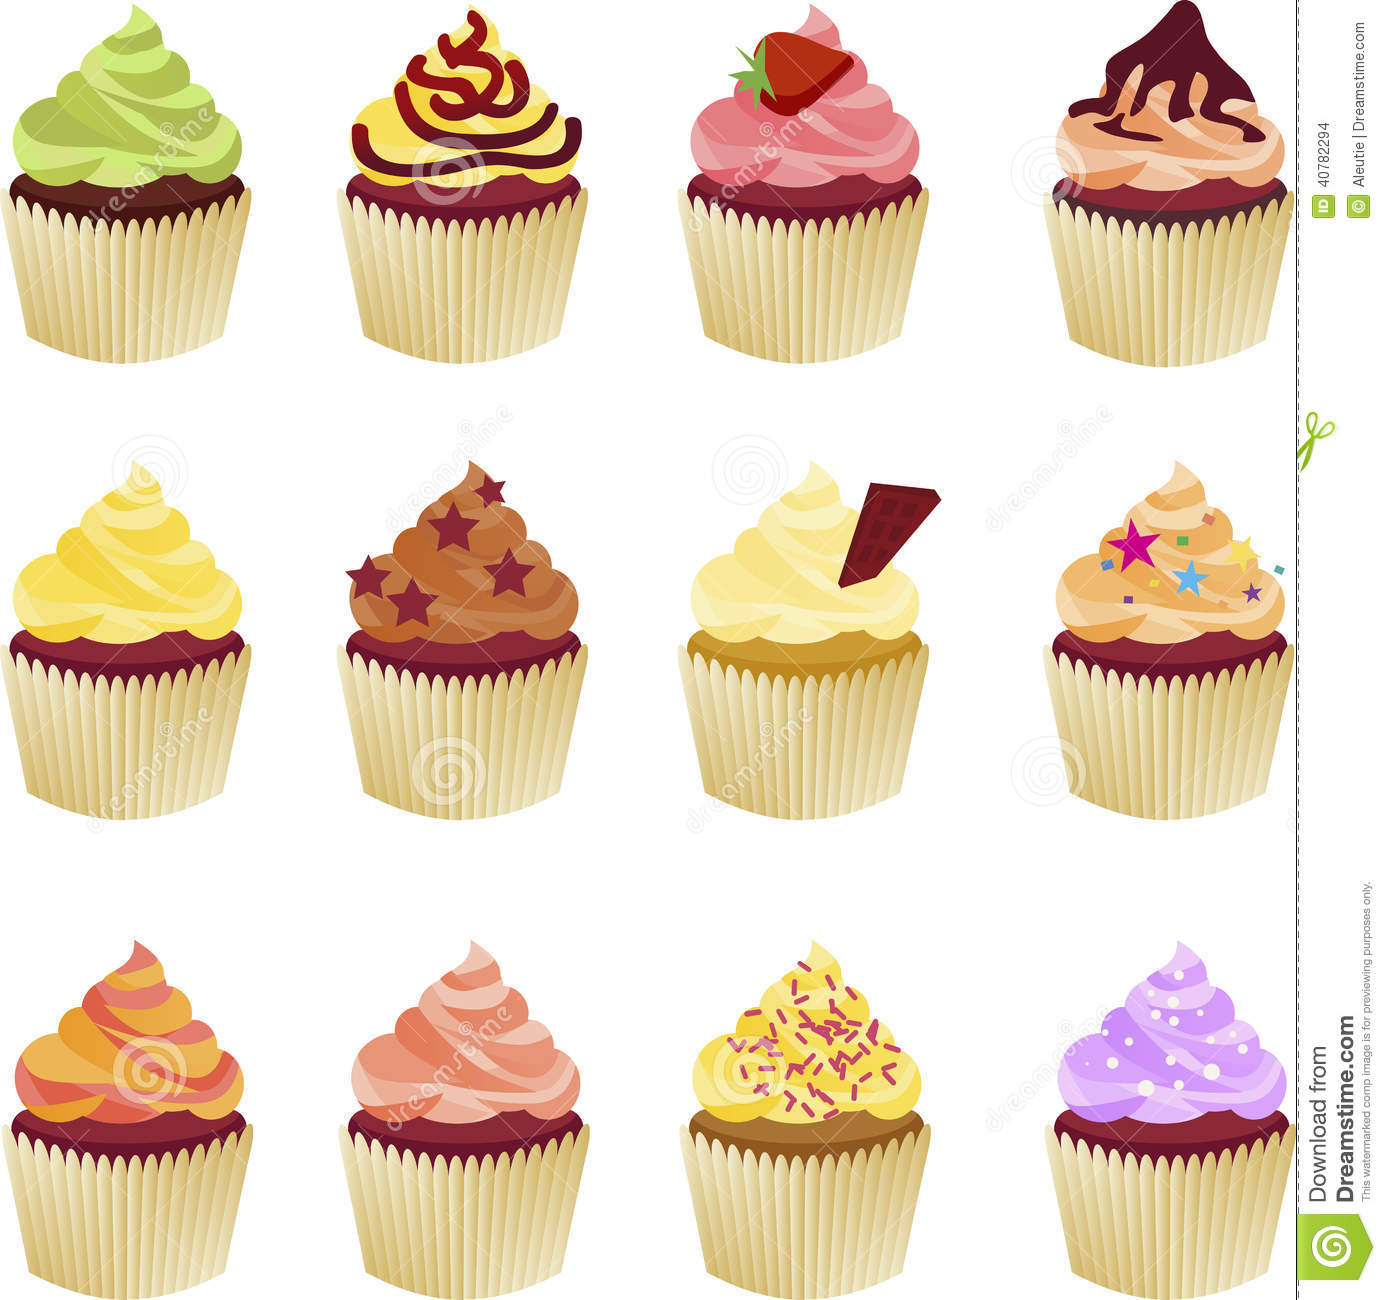 Difference Cakes Cupcakes